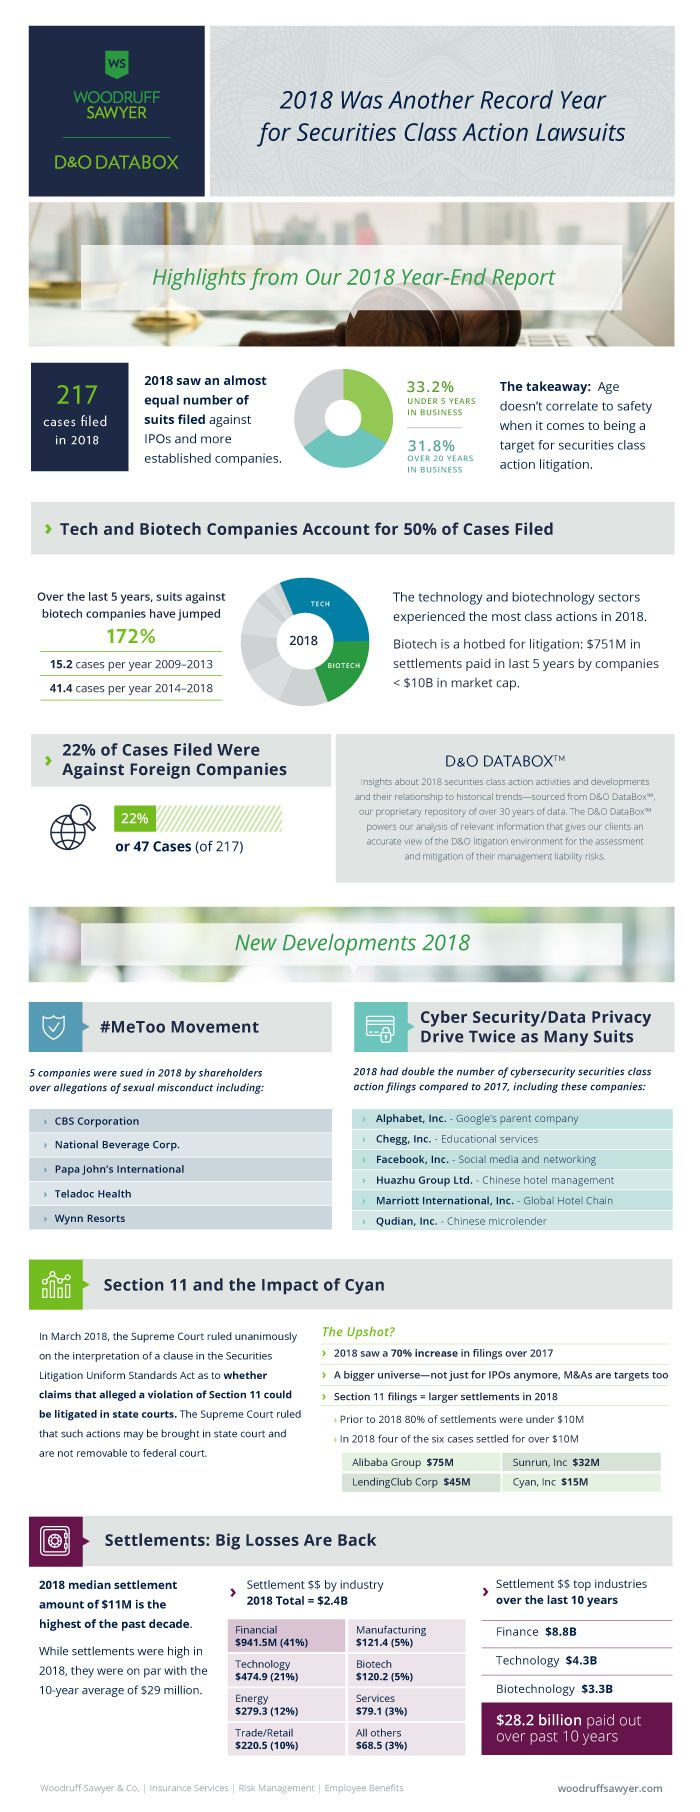 2018 Securities Classs Action Lawsuits Report DataBox Infographic